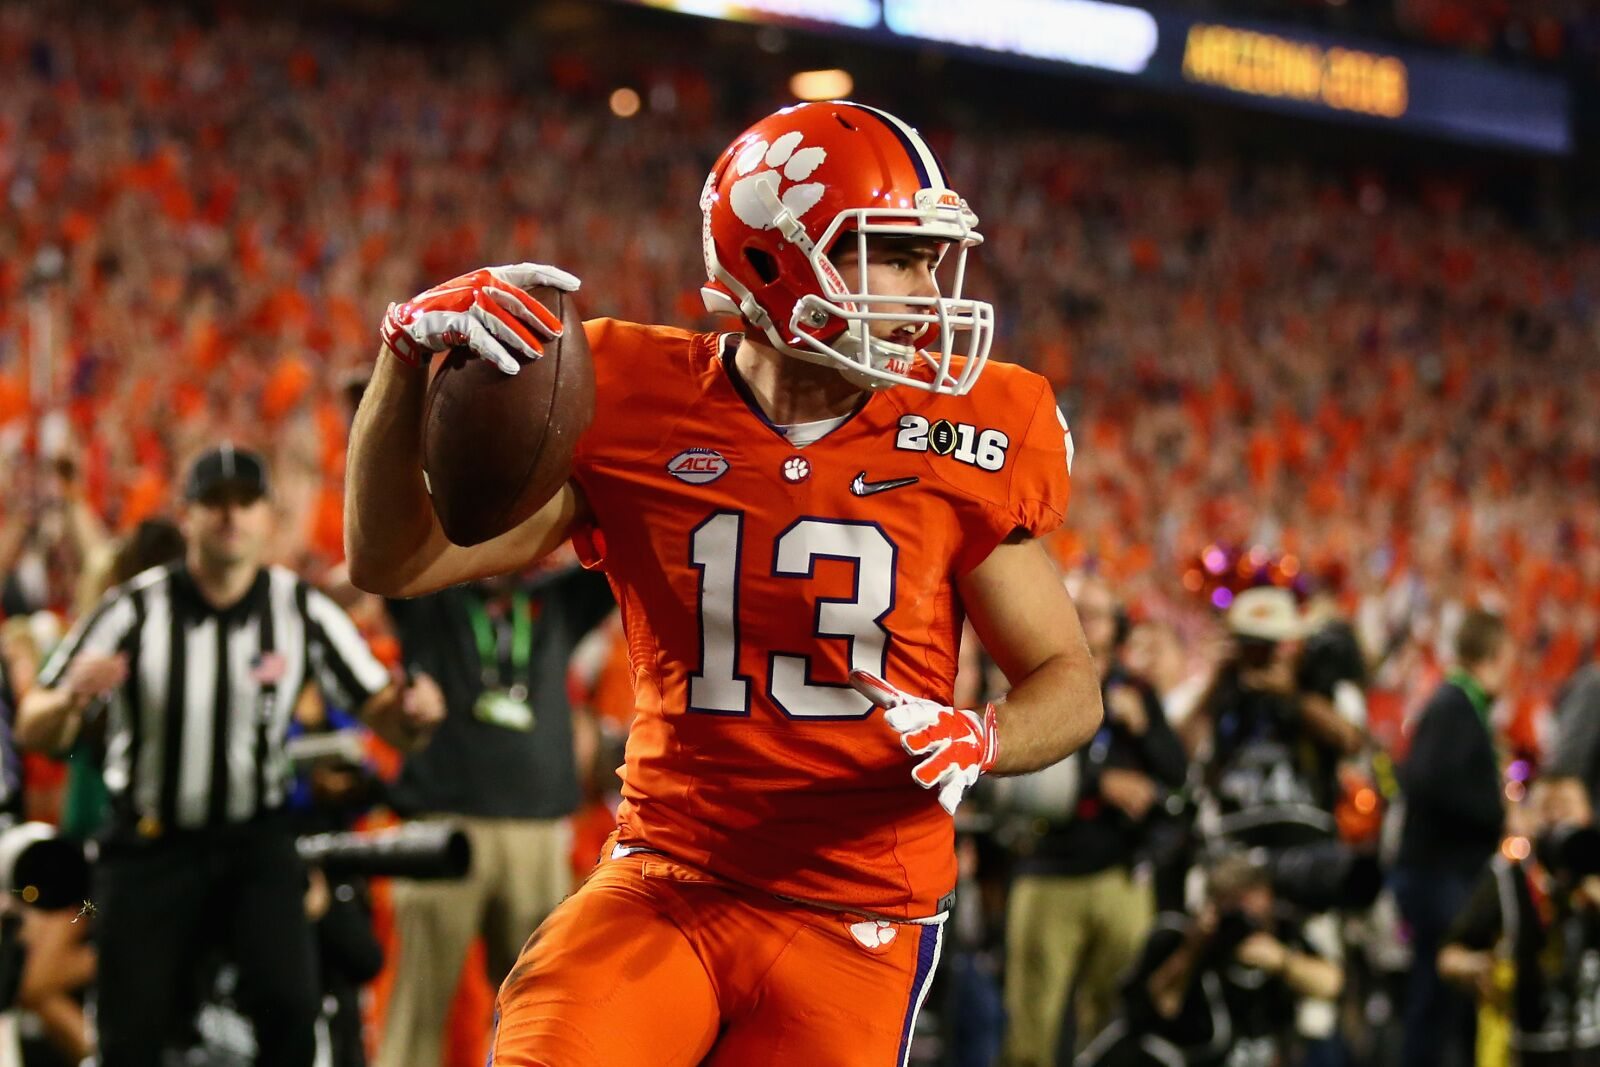 Oakland Raiders: Hunter Renfrow shines during spring practices